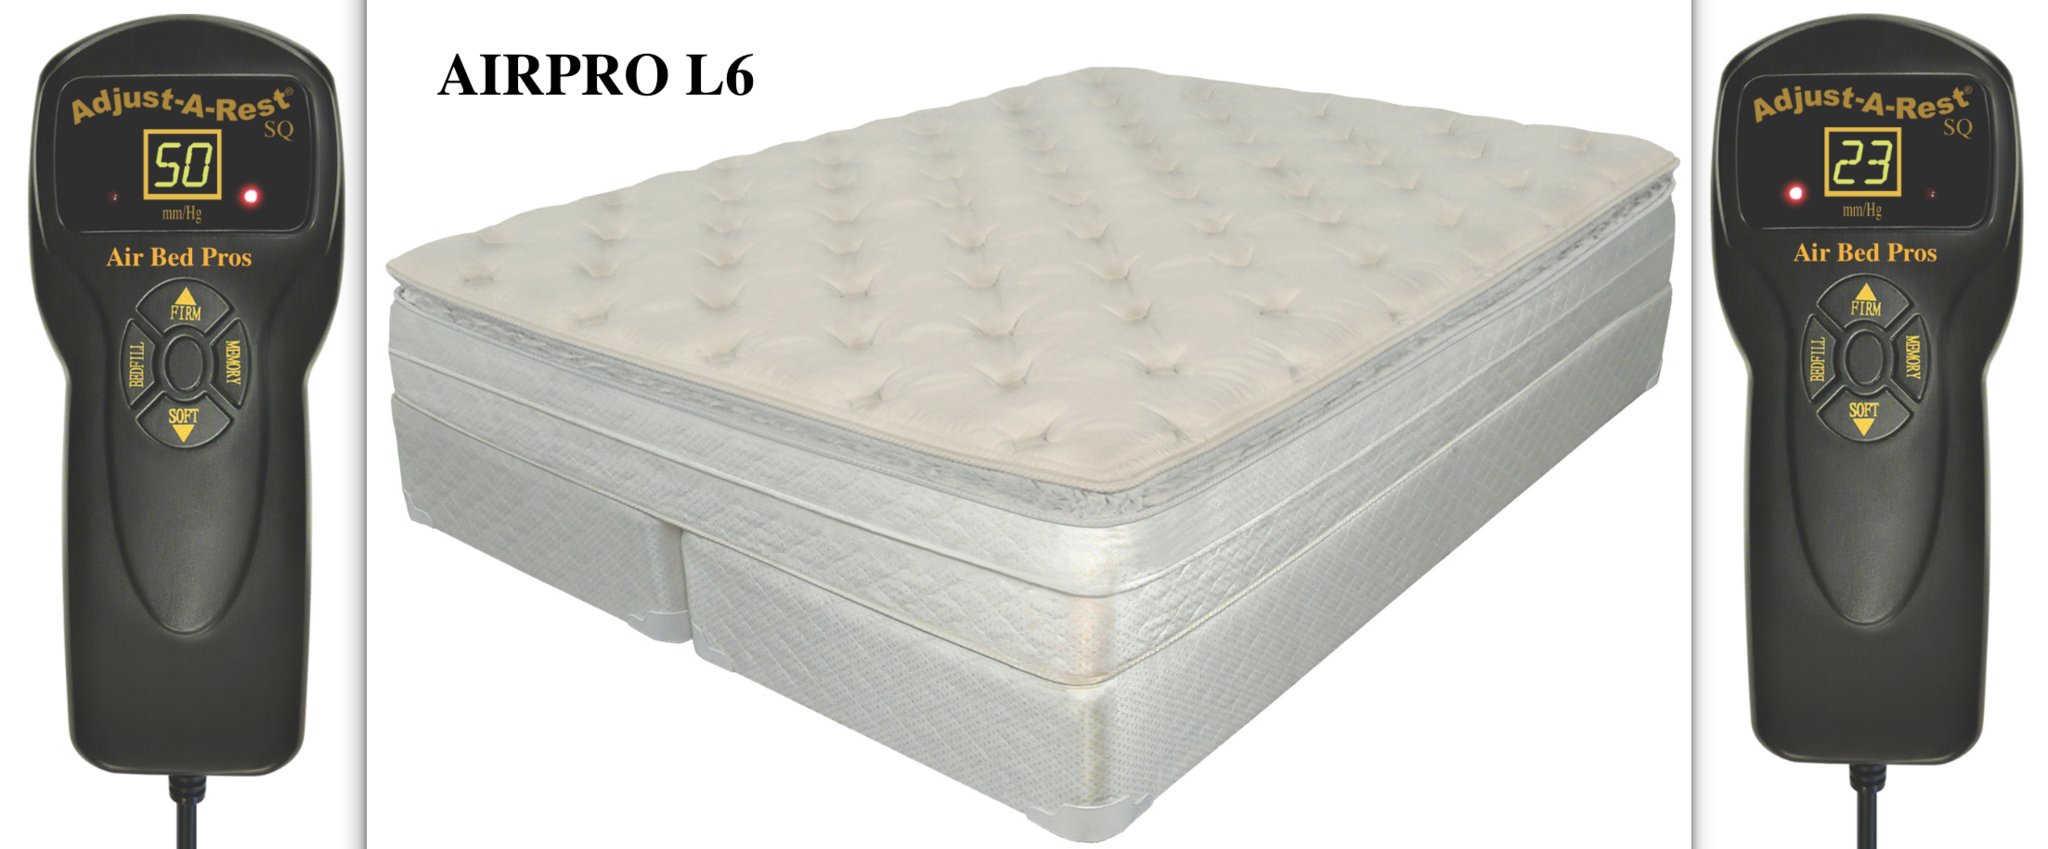 AIRPRO L6 Air Bed Compare to Sleep Number® p6 Bed